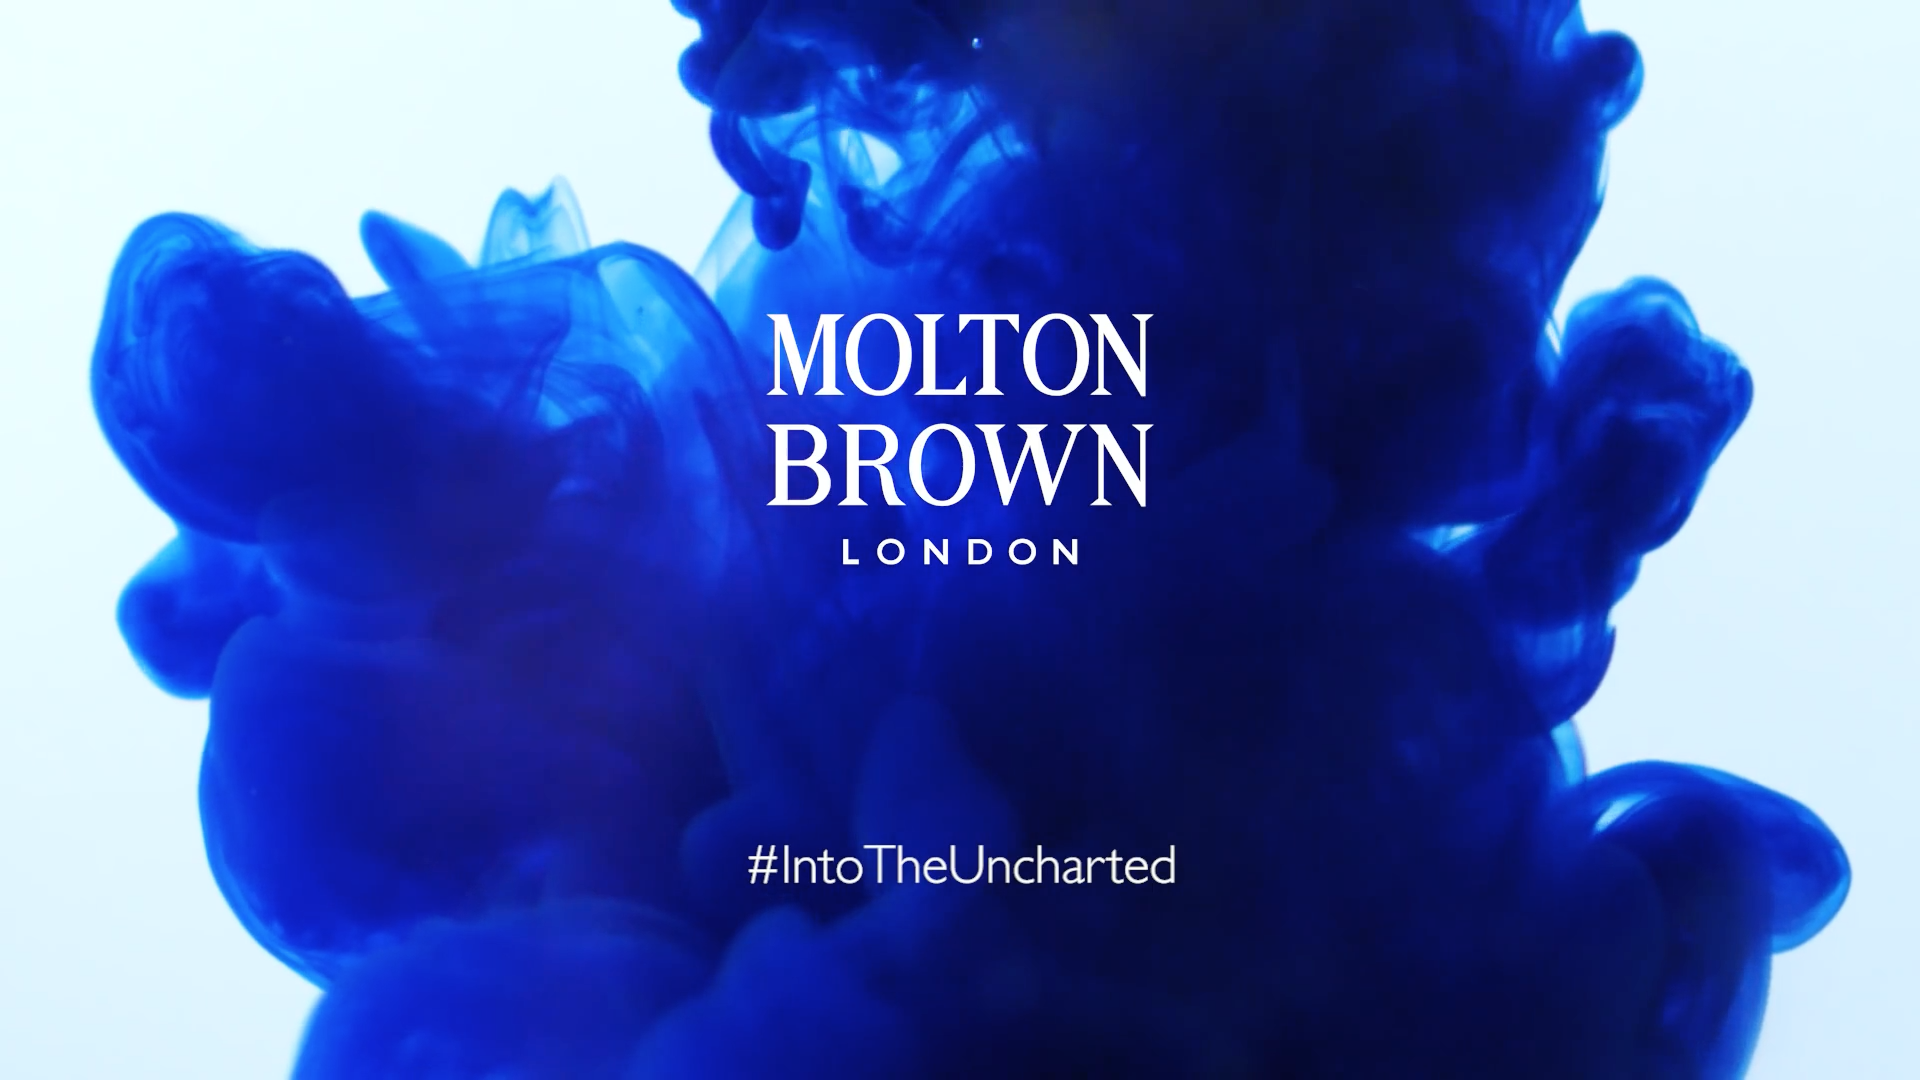 Molton Brown: Commercial